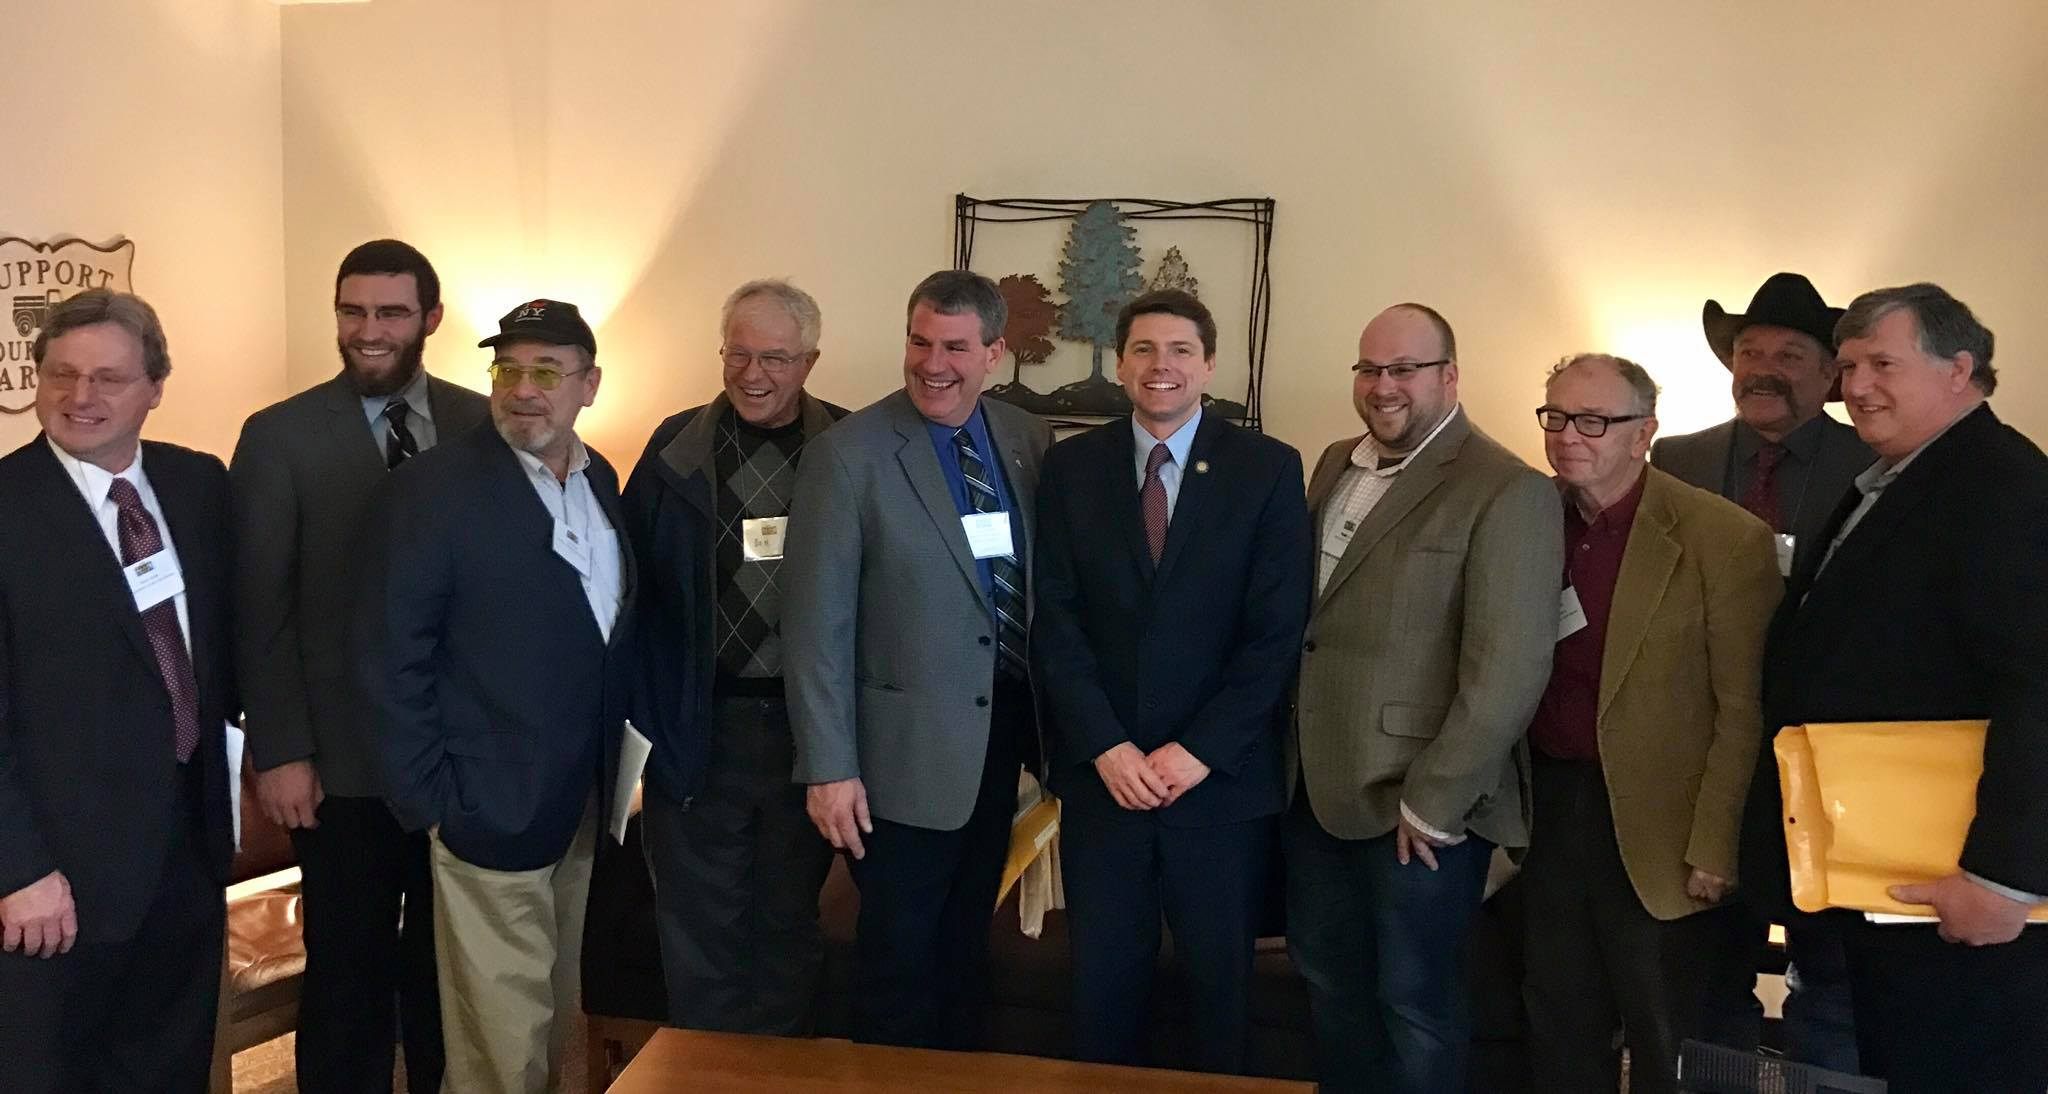 In March 2017, Assemblyman Jones met with local Farm Bureau members to learn about agricultural issues in the North Country. The state budget restores many important programs that provide vital suppor